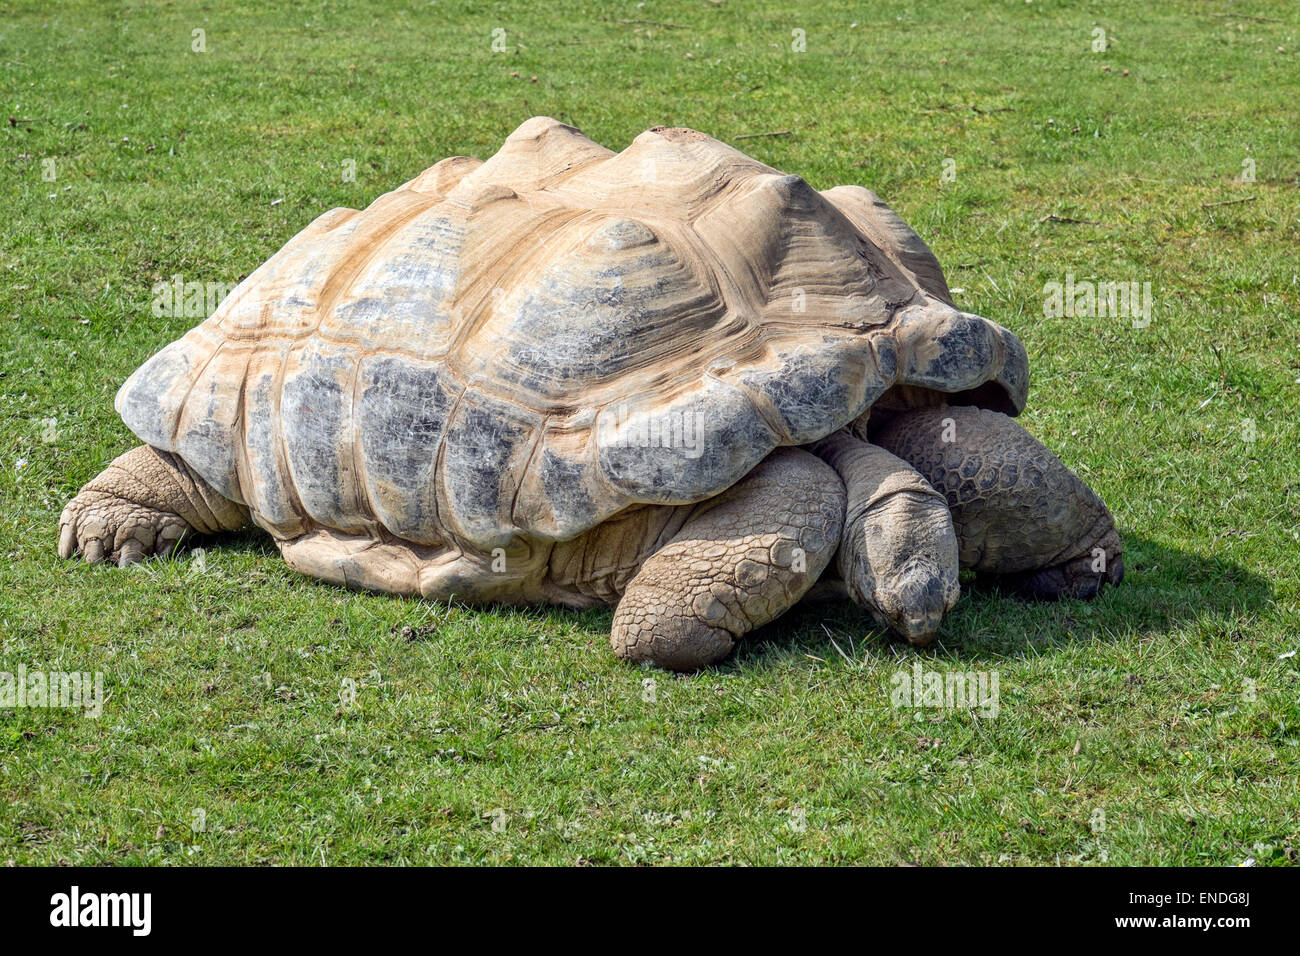 A Aldabra Giant Tortoise (geochelone gigantea) from a small atol in the Seyshelles - Stock Image